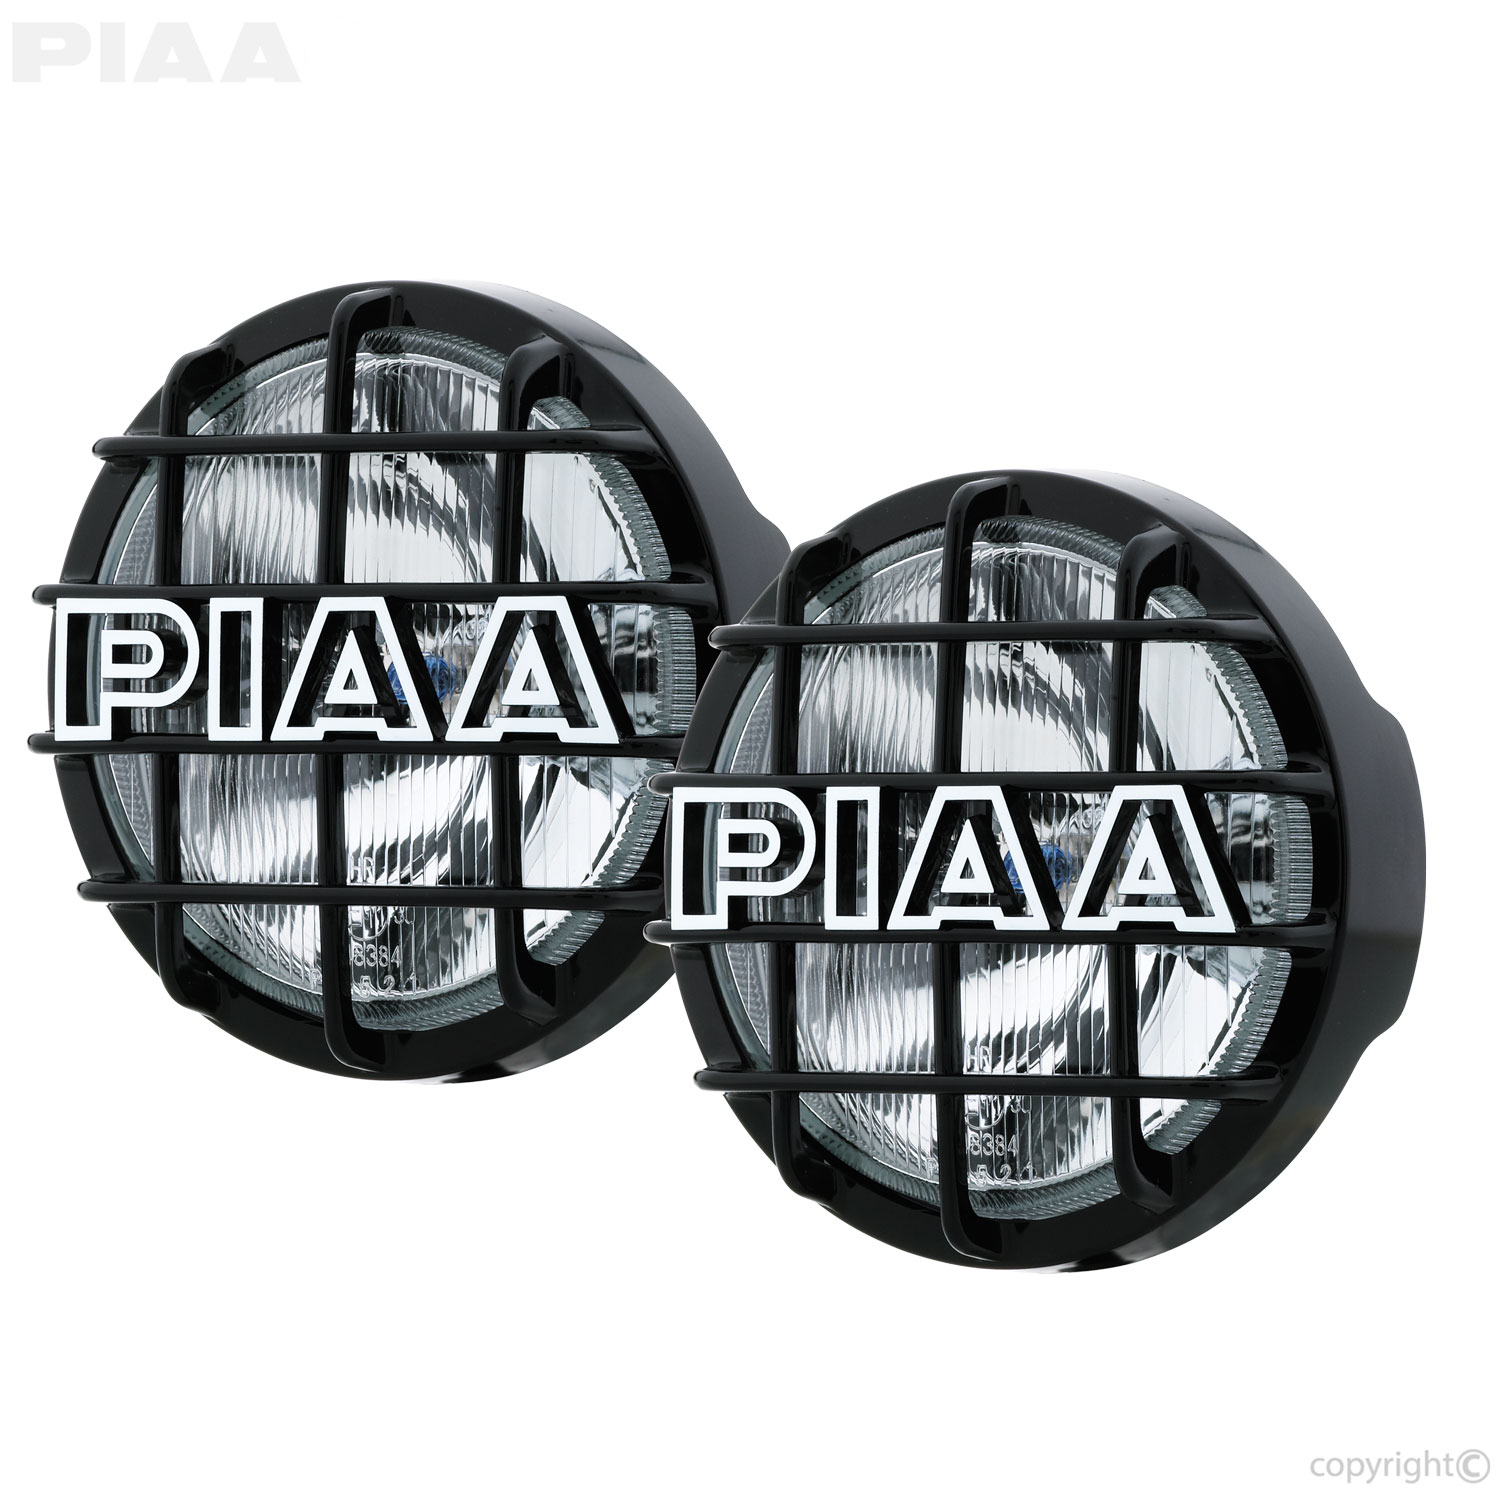 piaa 05296 520 daul hr?bw=1000&w=1000&bh=1000&h=1000 piaa 520 atp xtreme white plus halogen lamp kit 5296 piaa 520 wiring harness at cos-gaming.co